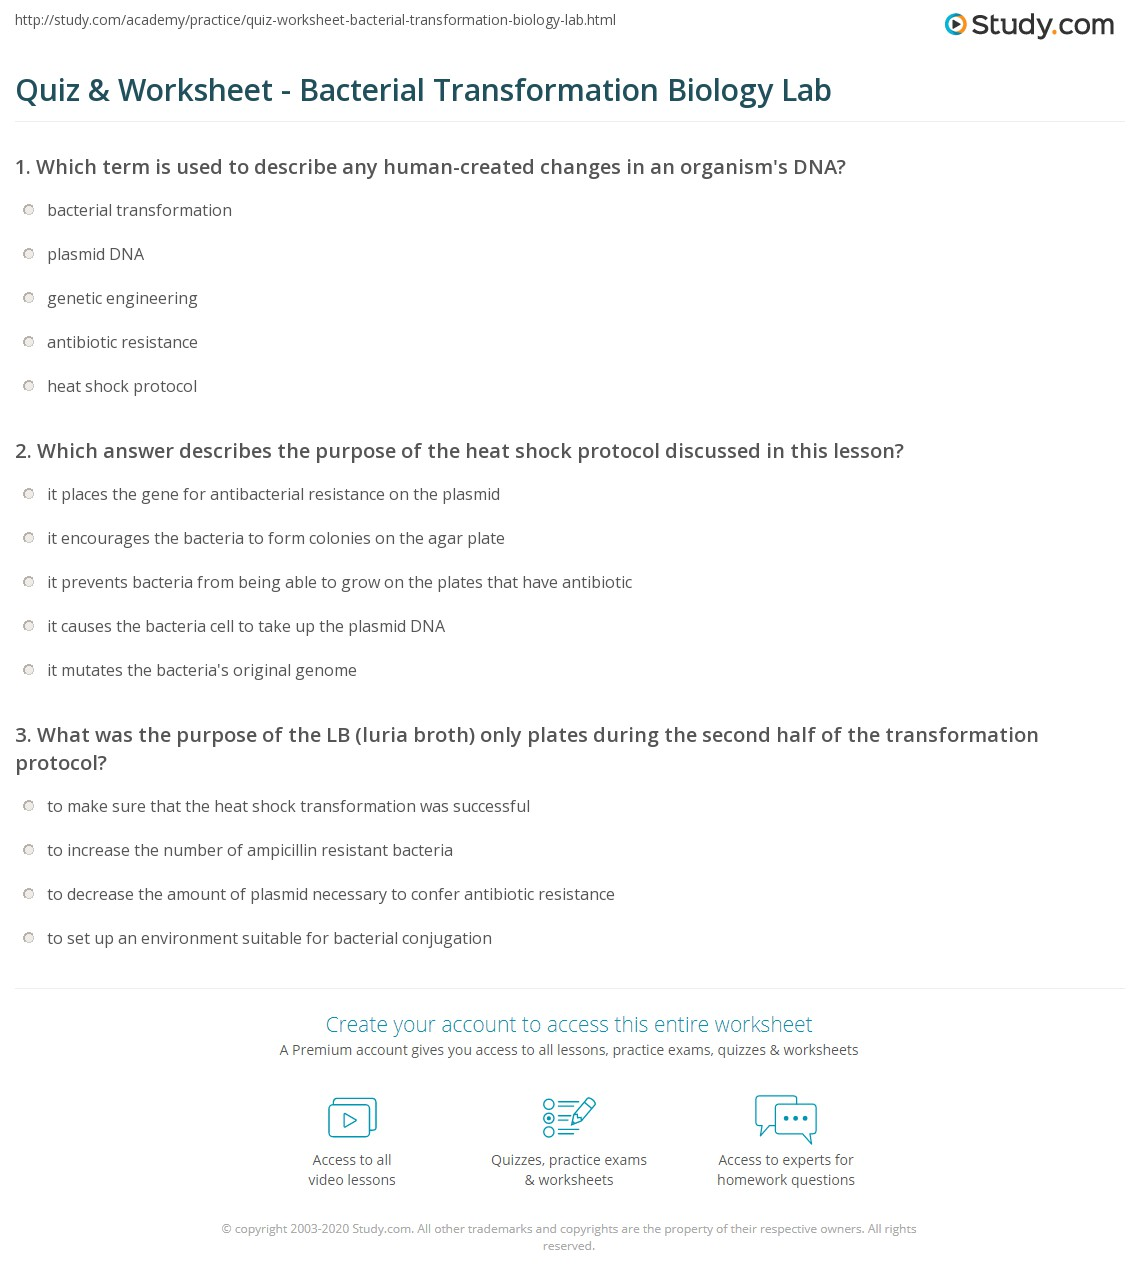 quiz worksheet bacterial transformation biology lab. Black Bedroom Furniture Sets. Home Design Ideas